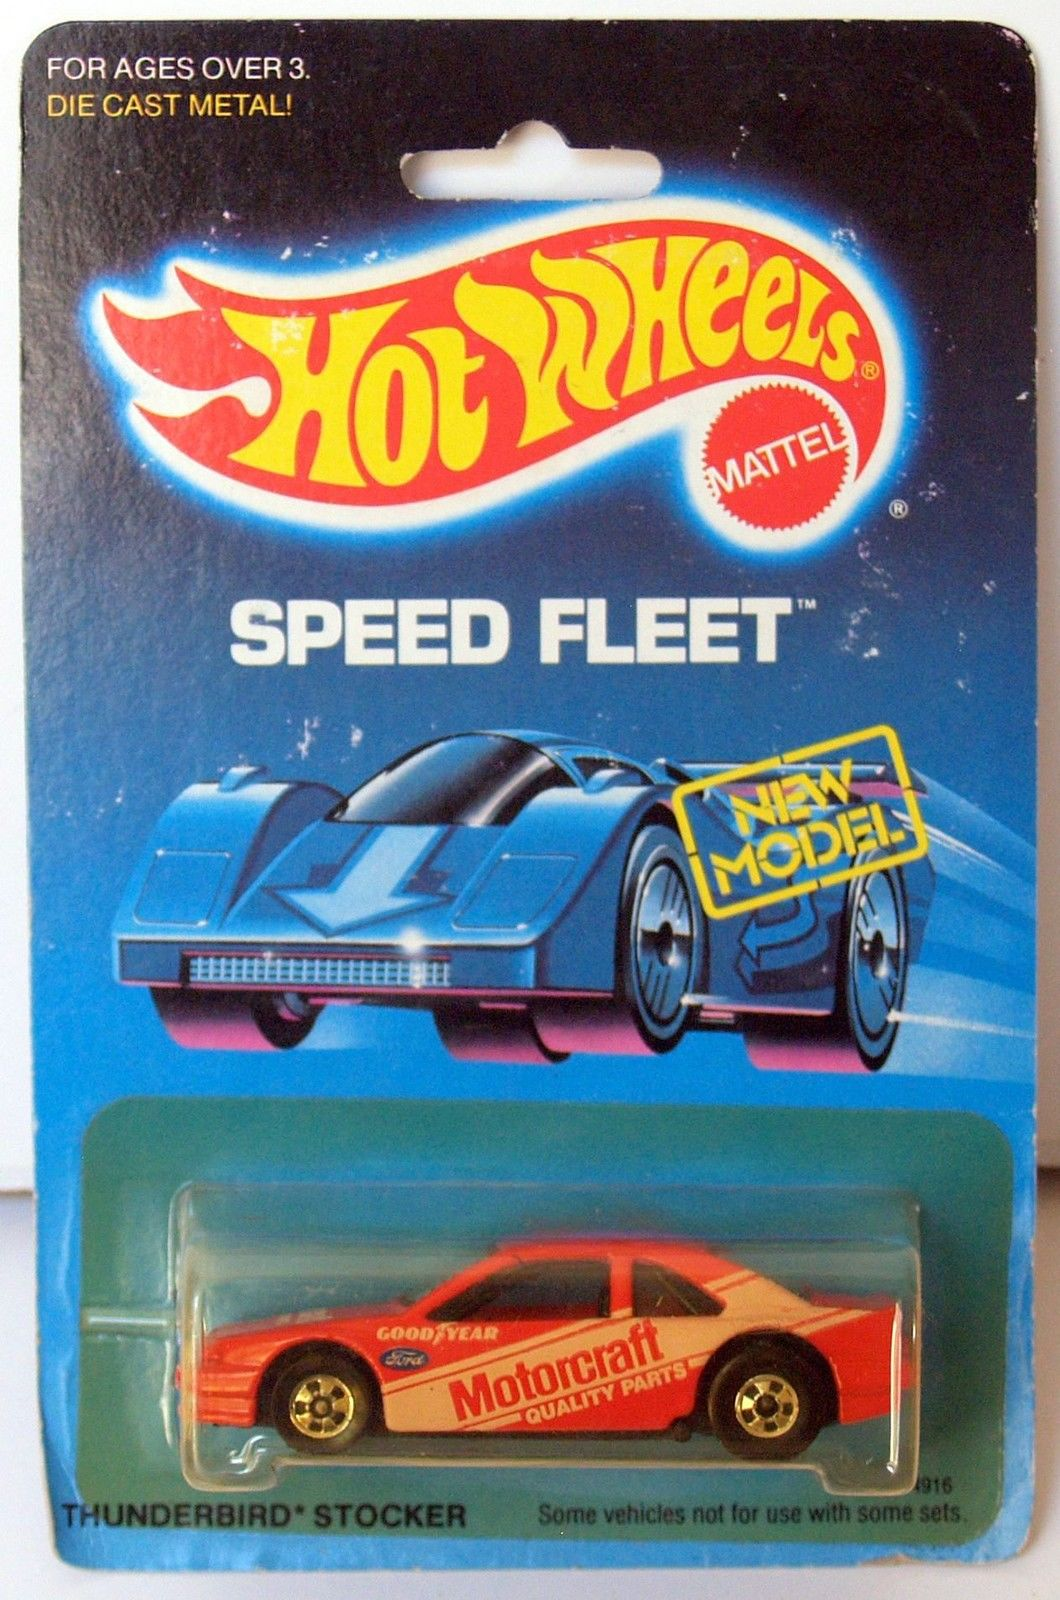 HOT WHEELS 1988 SPEED FLEET THUNDERBIRD STOCKER RED